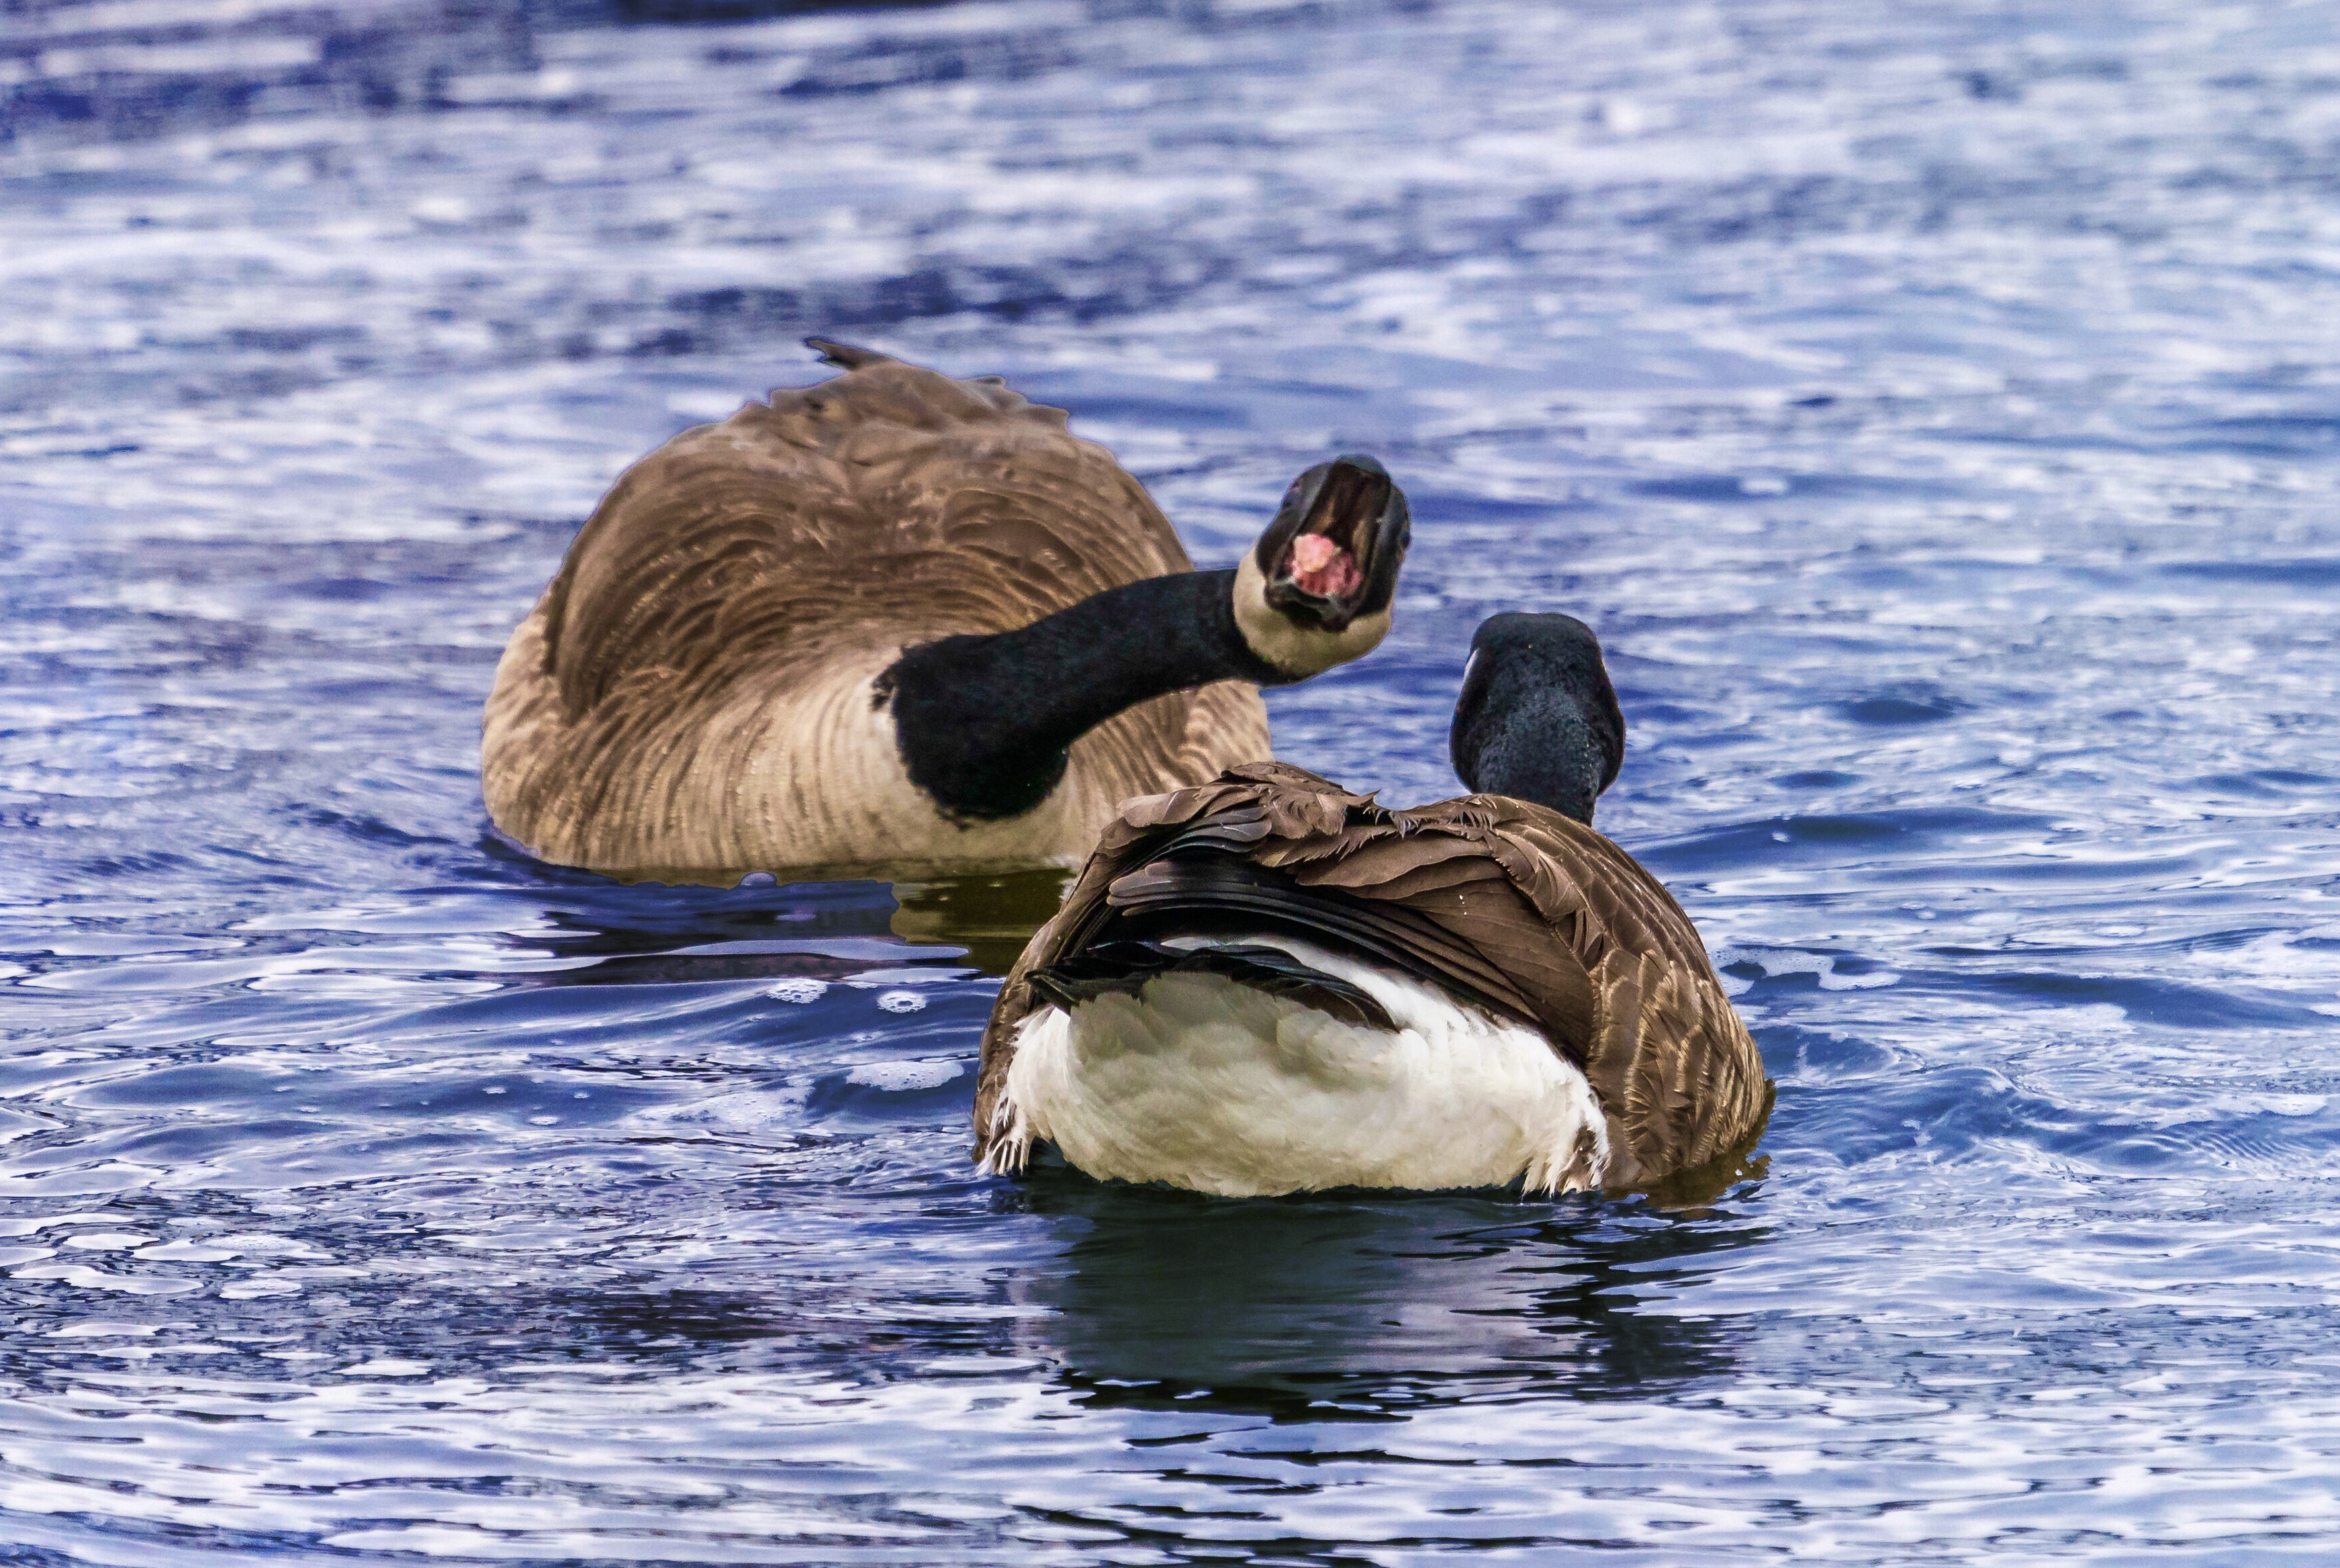 Canada Geese in Mating Dance, Singing